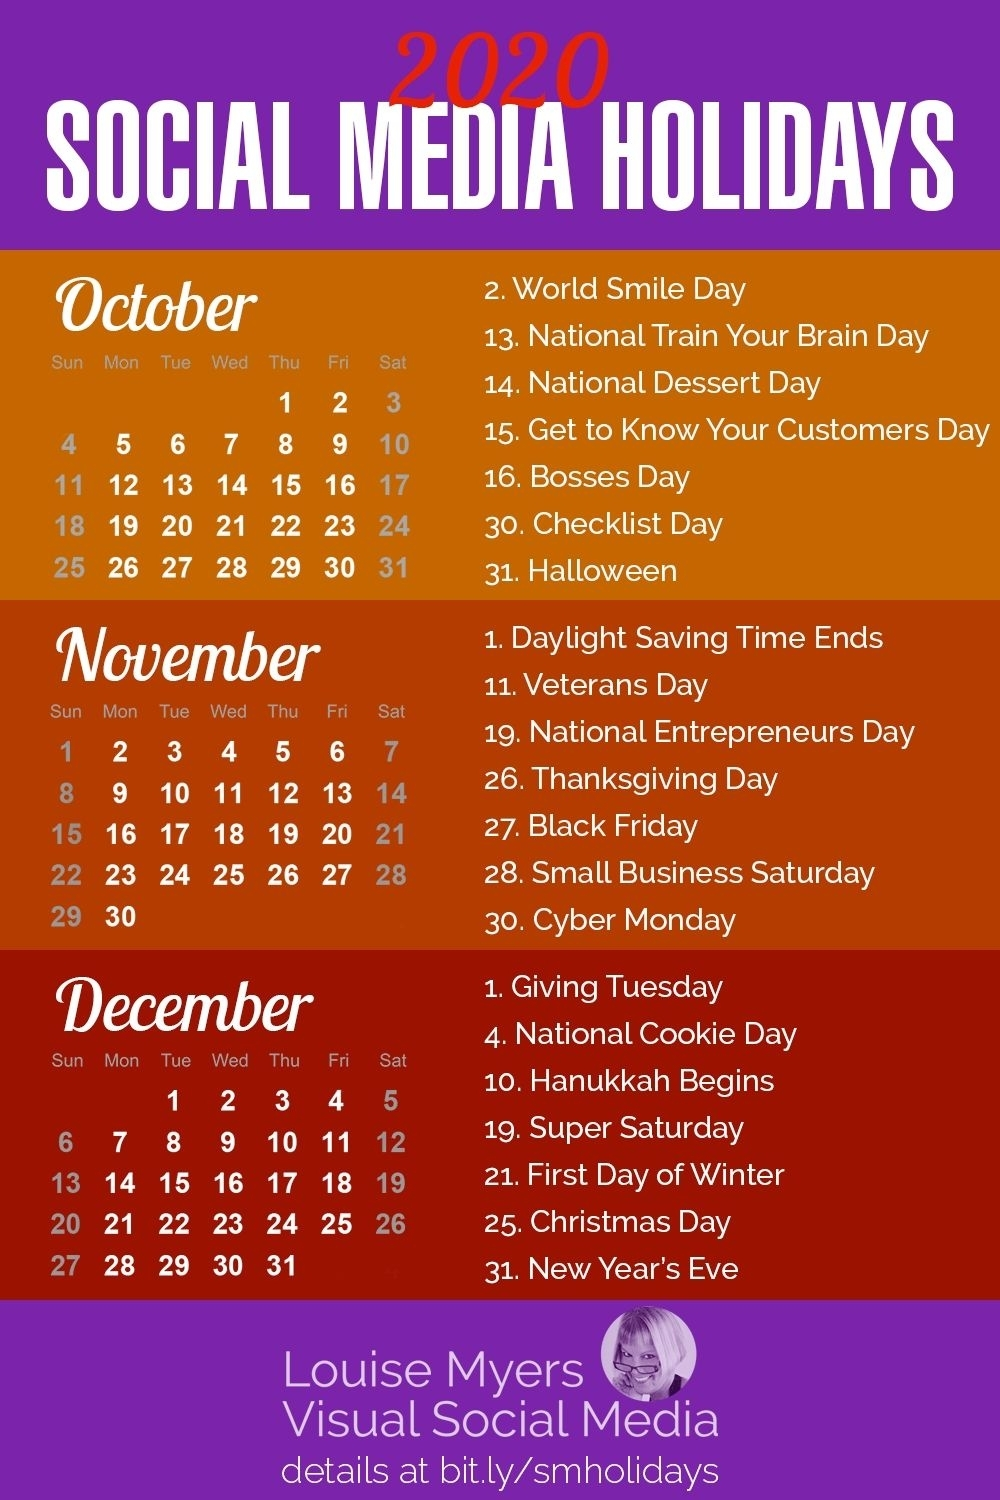 Calendar Of Special Days 2020 In 2020 | Marketing Strategy within Yearly Calendar Of Special Days